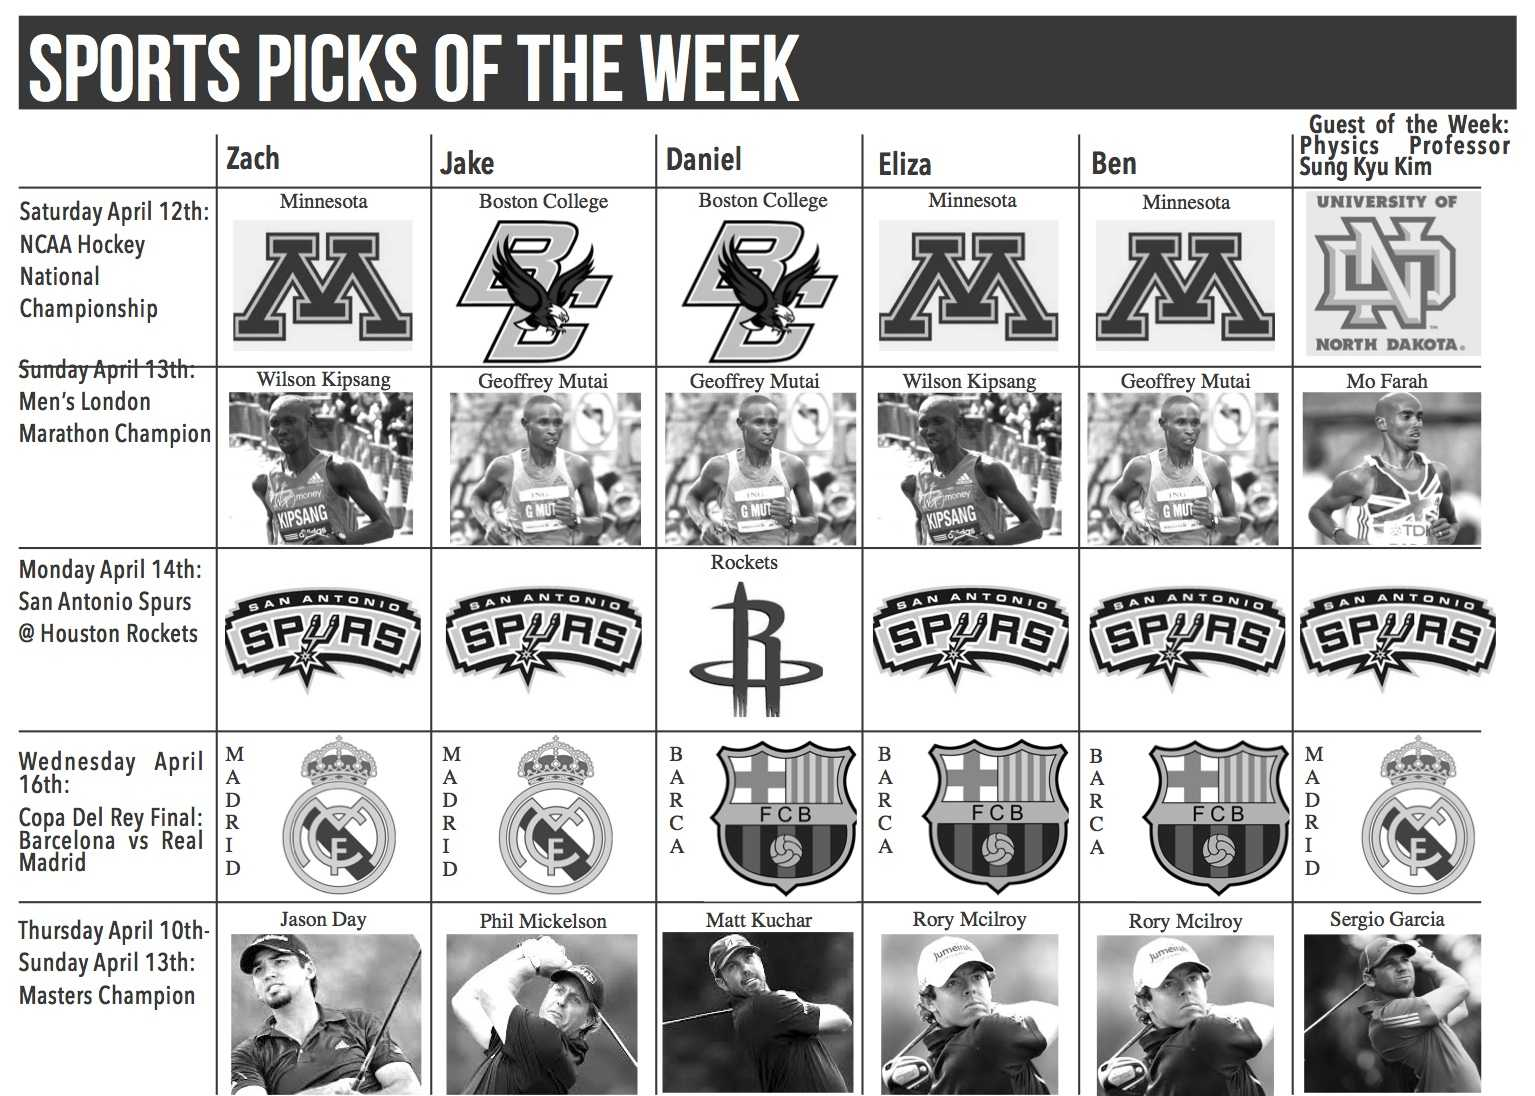 Sports Picks of the Week: 4/11/14